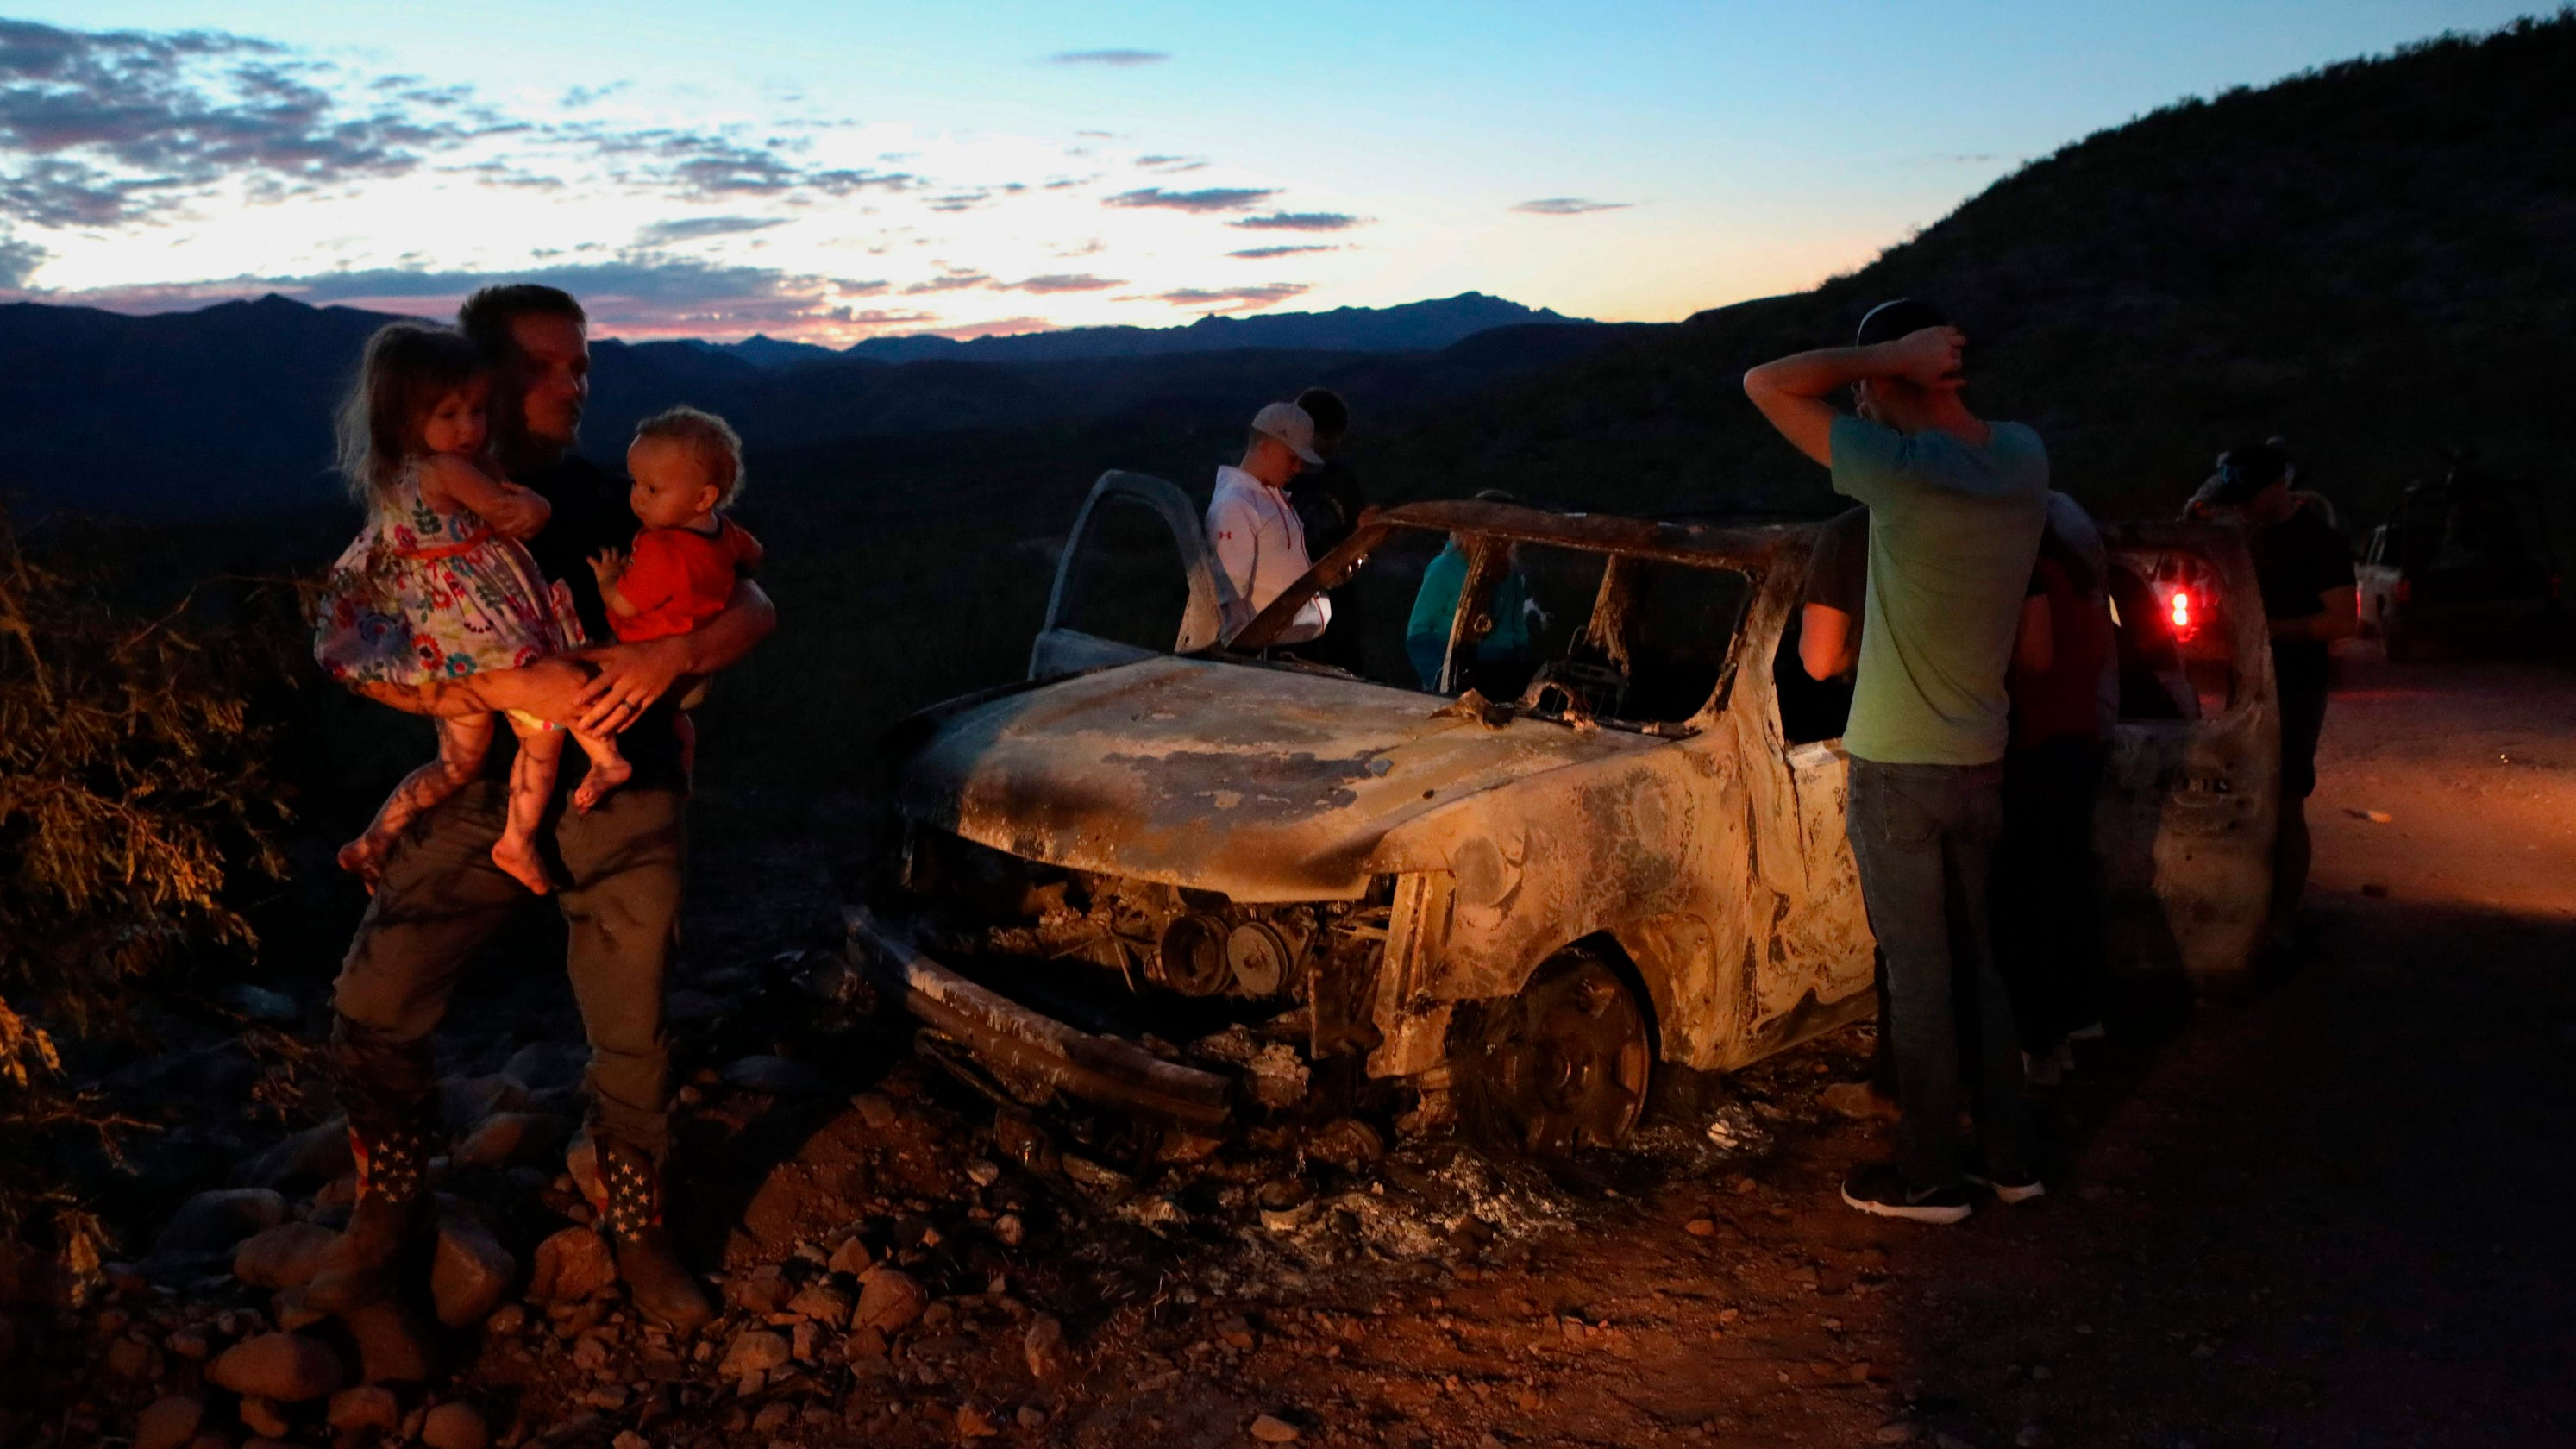 An 'incomprehensible' attack. 9 dead family members. 200 shell casings. What happened on that road in Mexico?